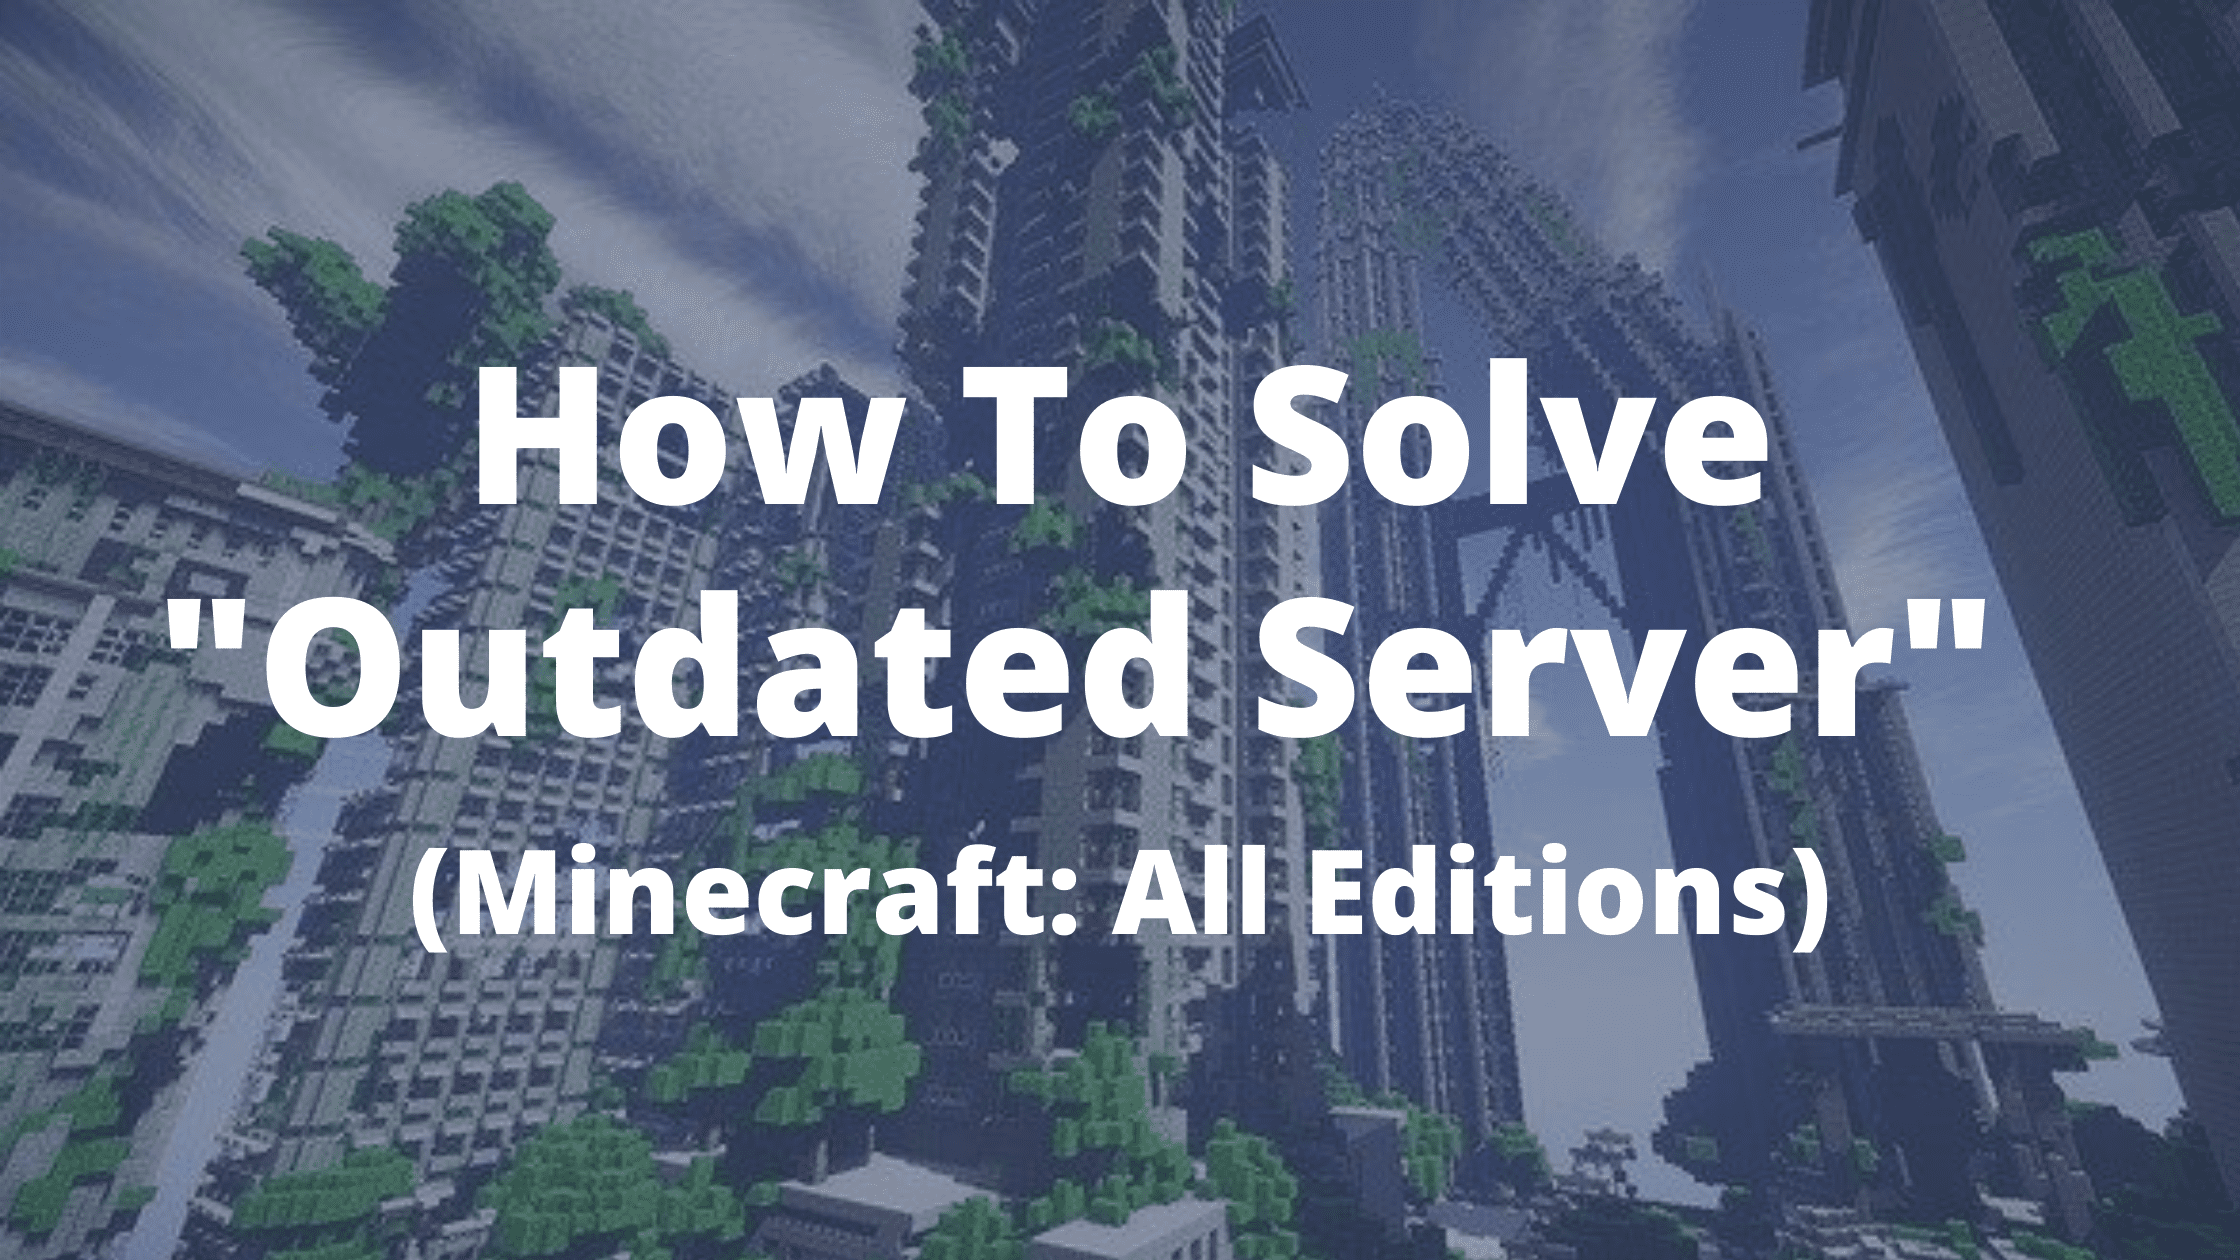 Minecraft Outdated Server